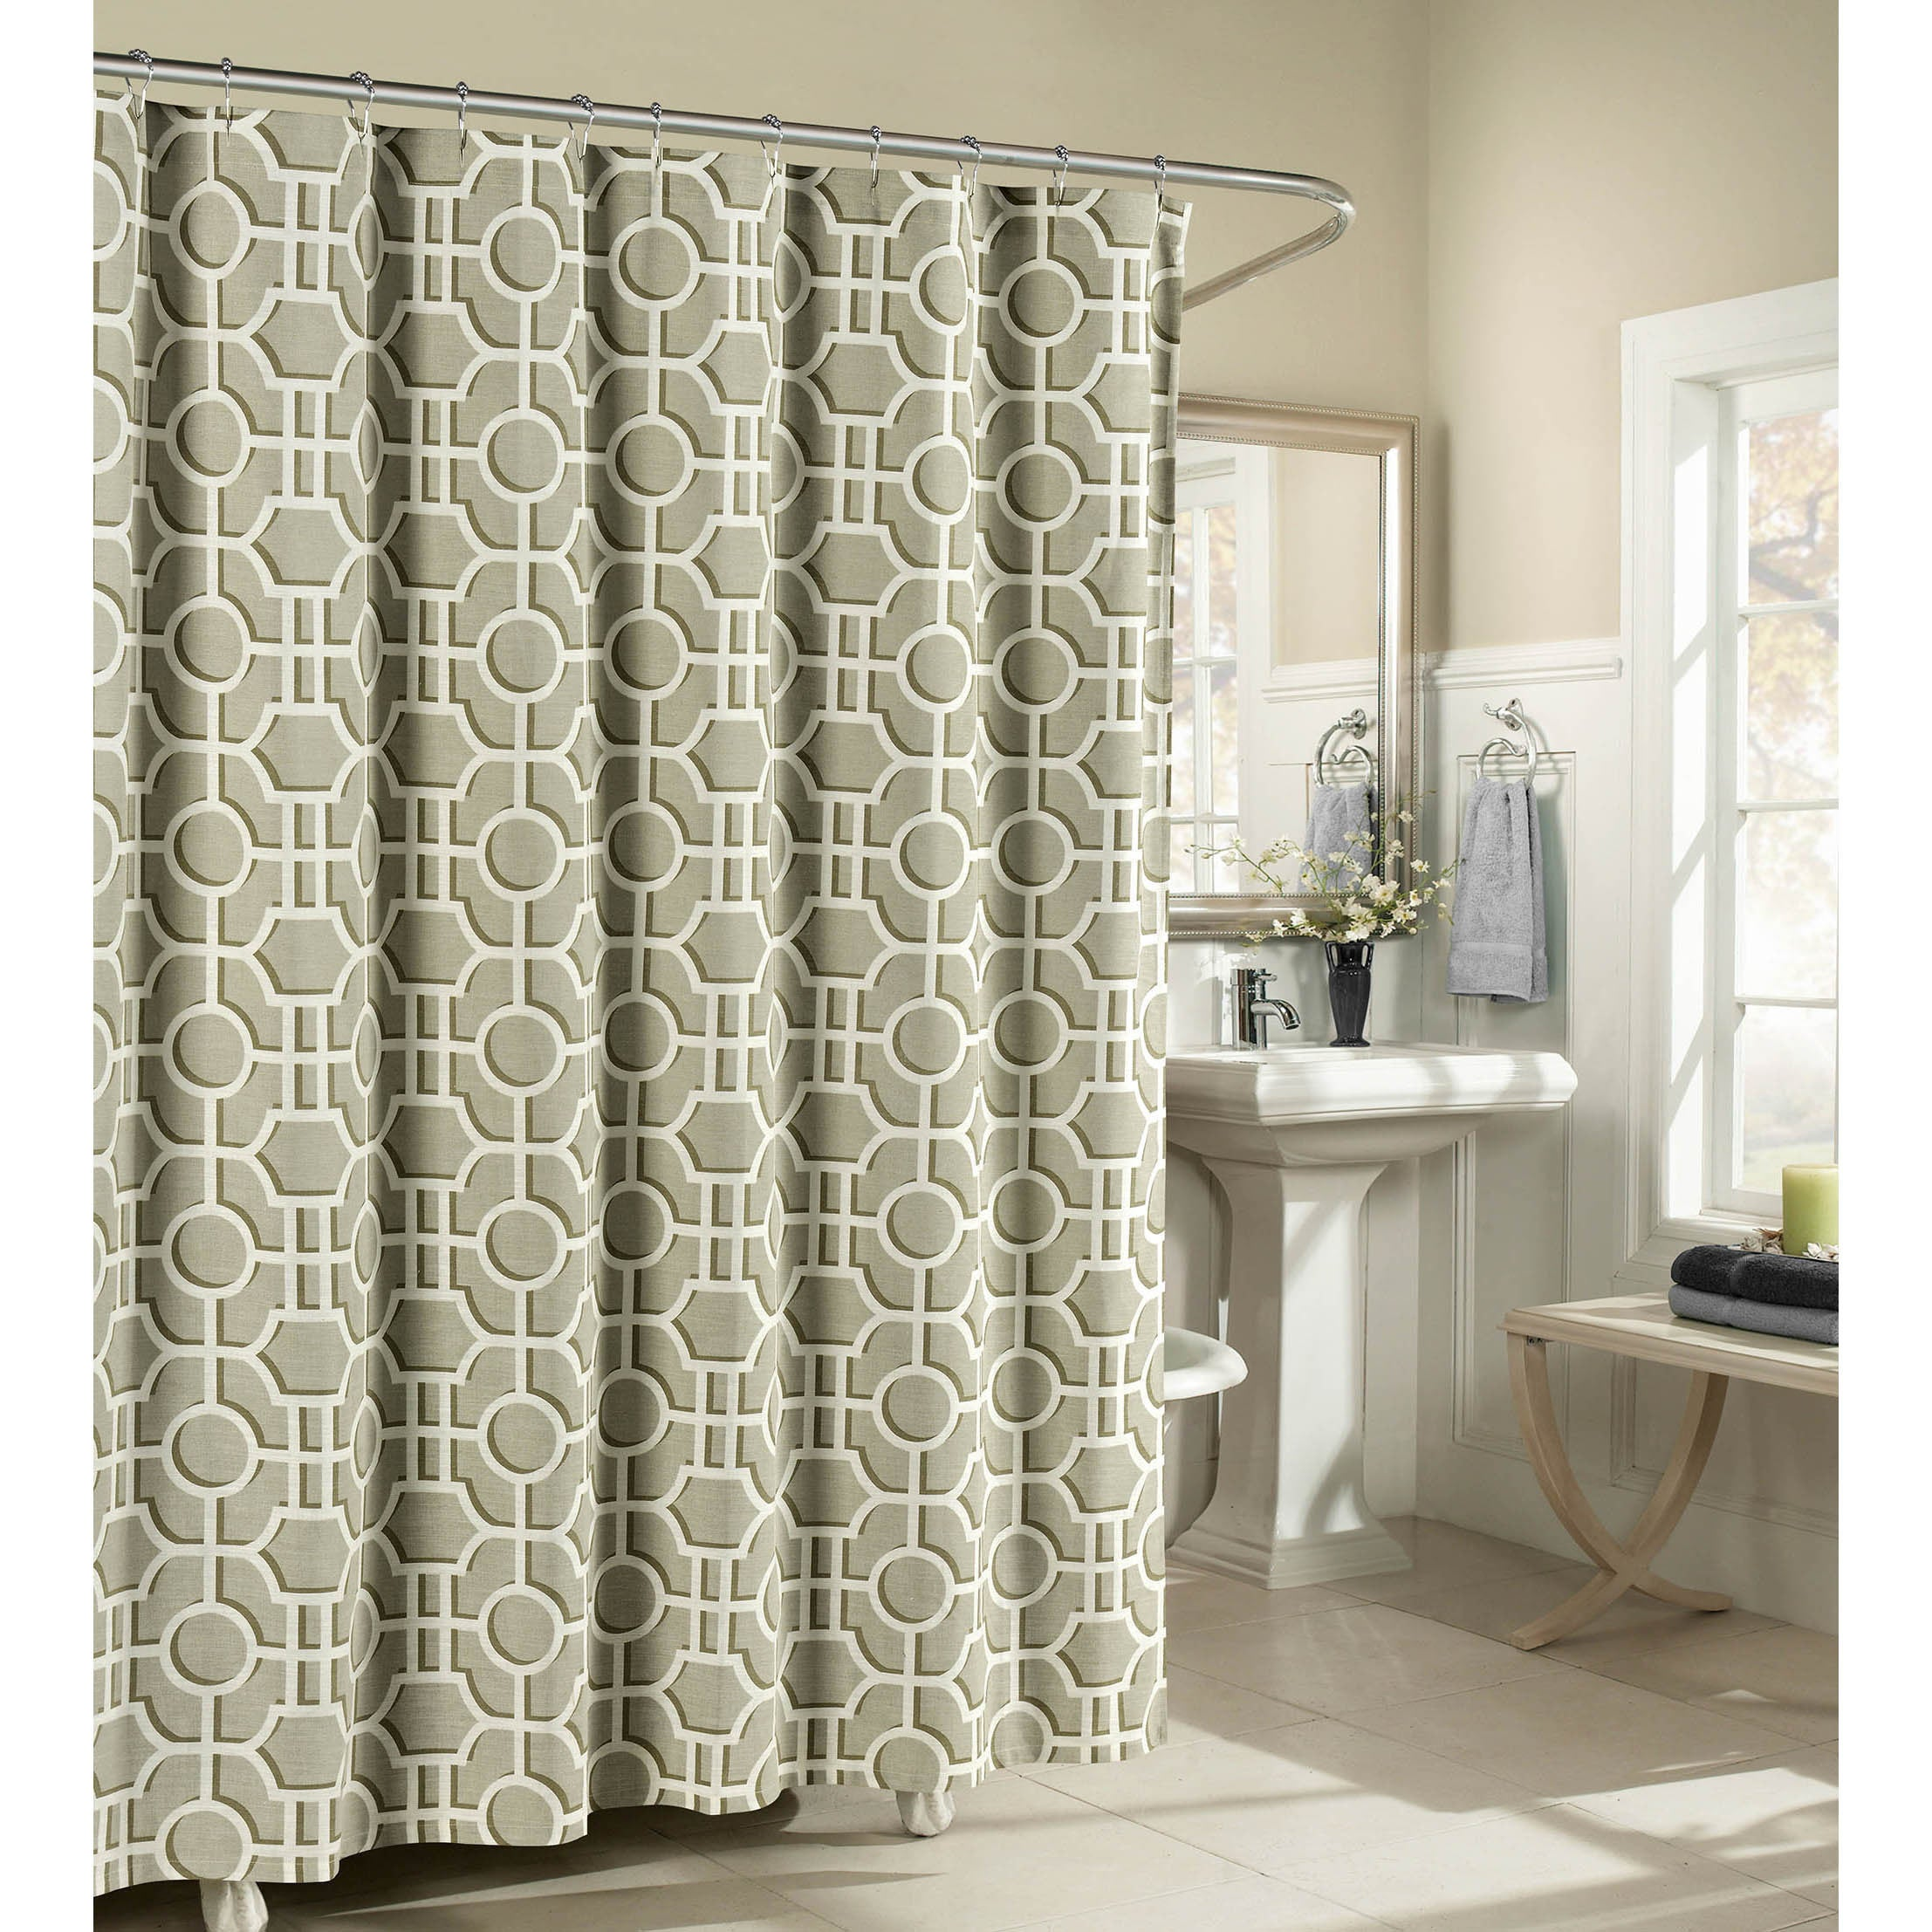 Shop Black Friday Deals On Creative Home Ideas Lenox 100 Cotton Luxury Fabric Shower Curtain Overstock 12833602 Teal